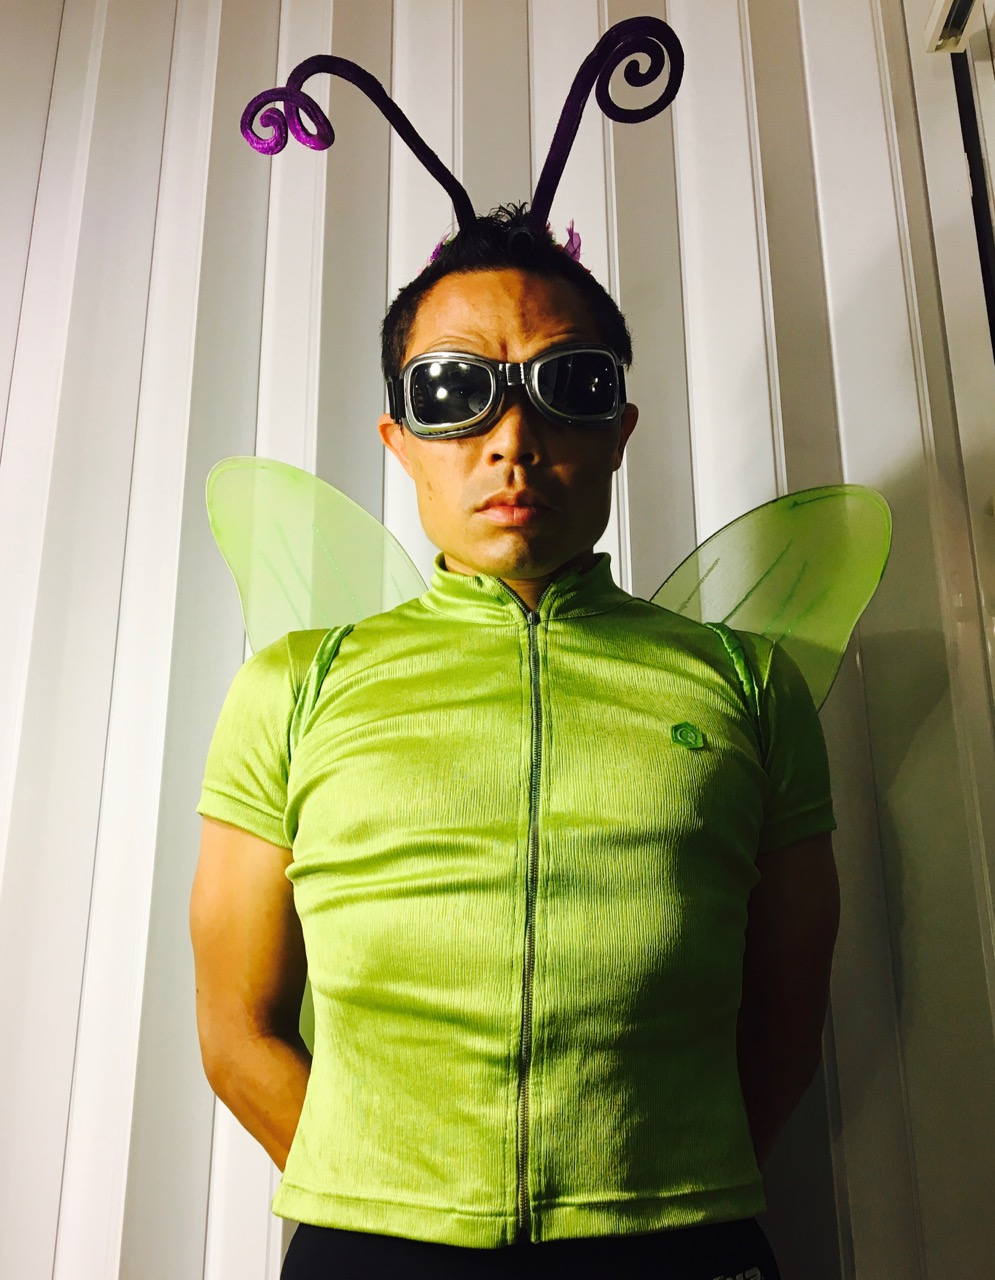 Fairy bug costume?